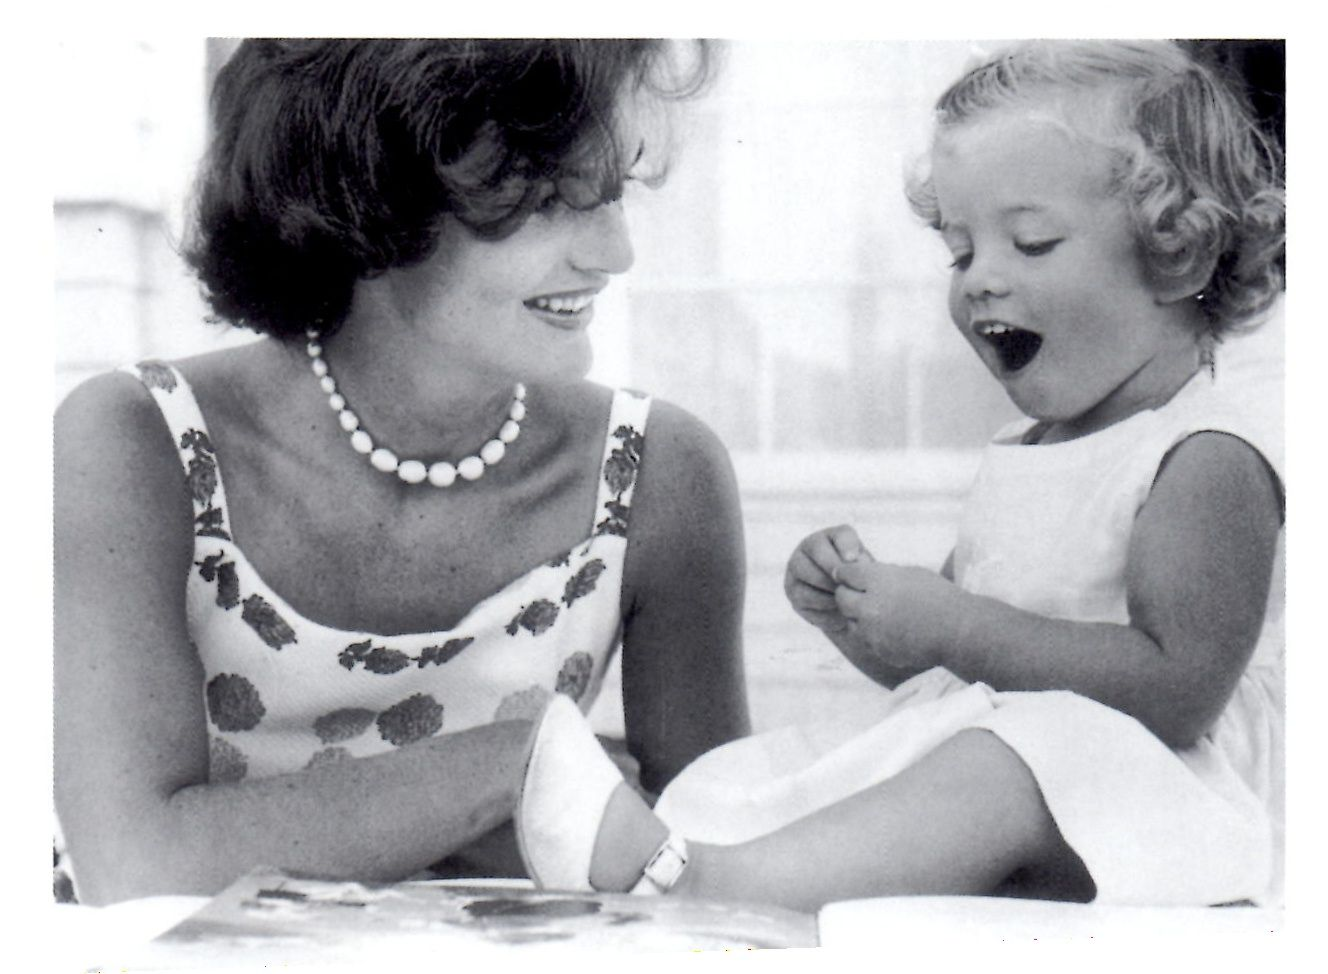 jackie and daughter relationship